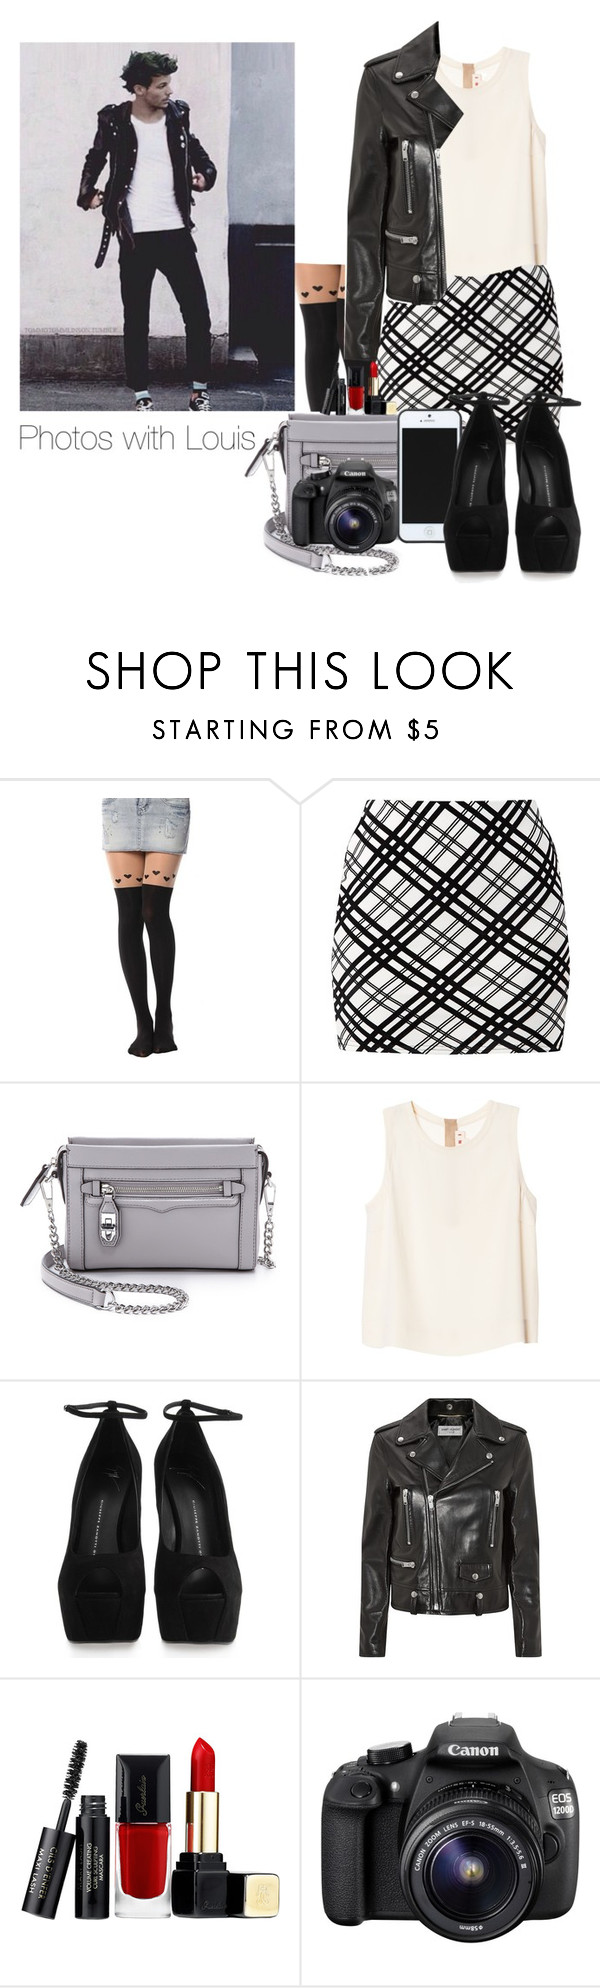 """Photos with Louis"" by smery09 ❤ liked on Polyvore featuring Innocence, Rebecca Minkoff, Marni, Kate Spade Saturday, Giuseppe Zanotti, Yves Saint Laurent, Guerlain and Eos"